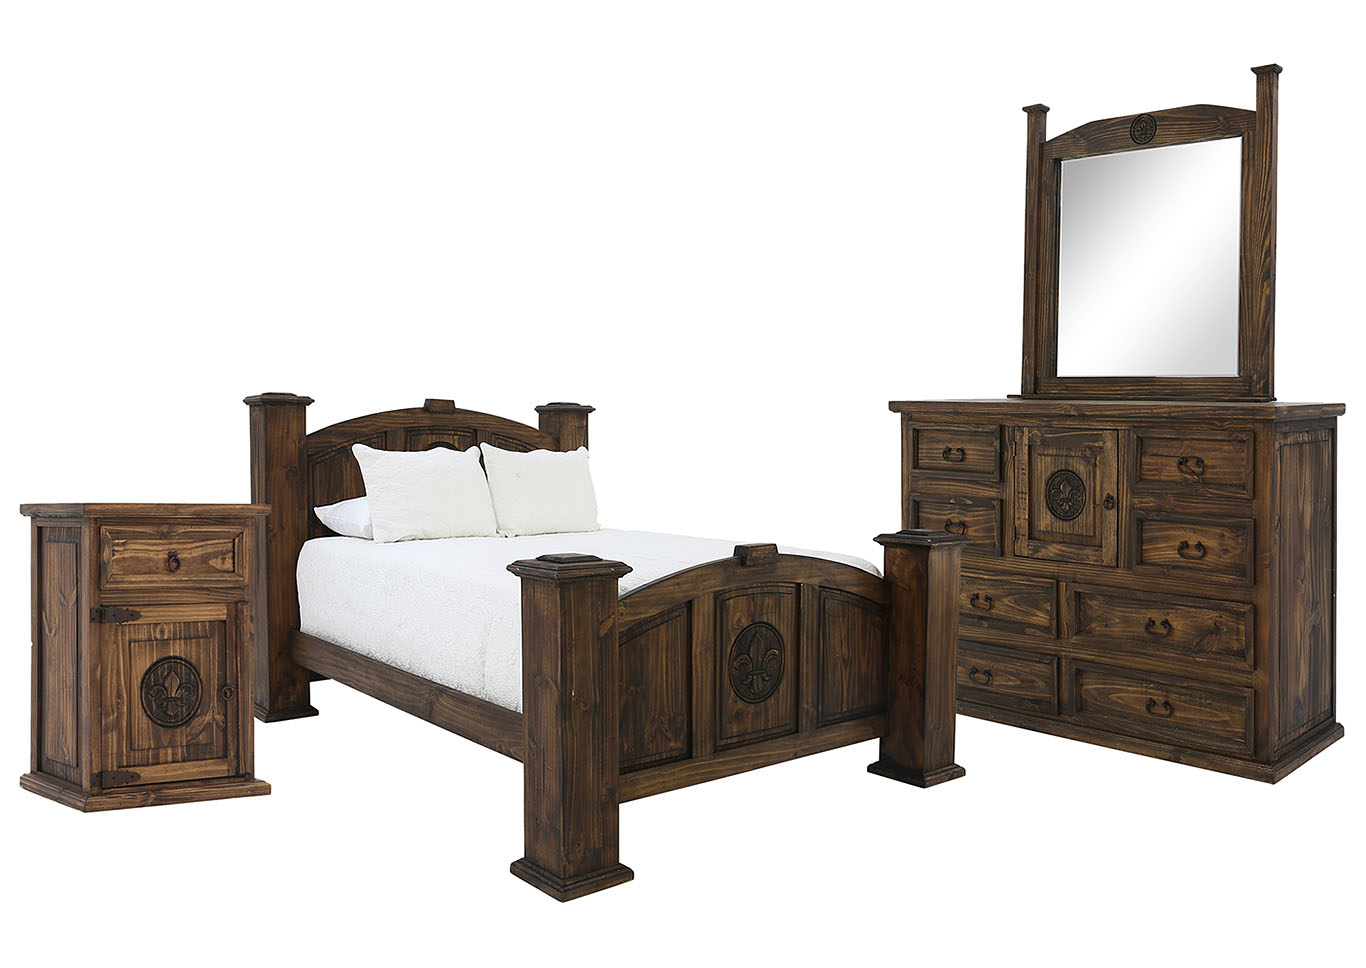 Ivan Smith CASA ANTIQUE WITH FLEUR DE LIS KING BEDROOM SET